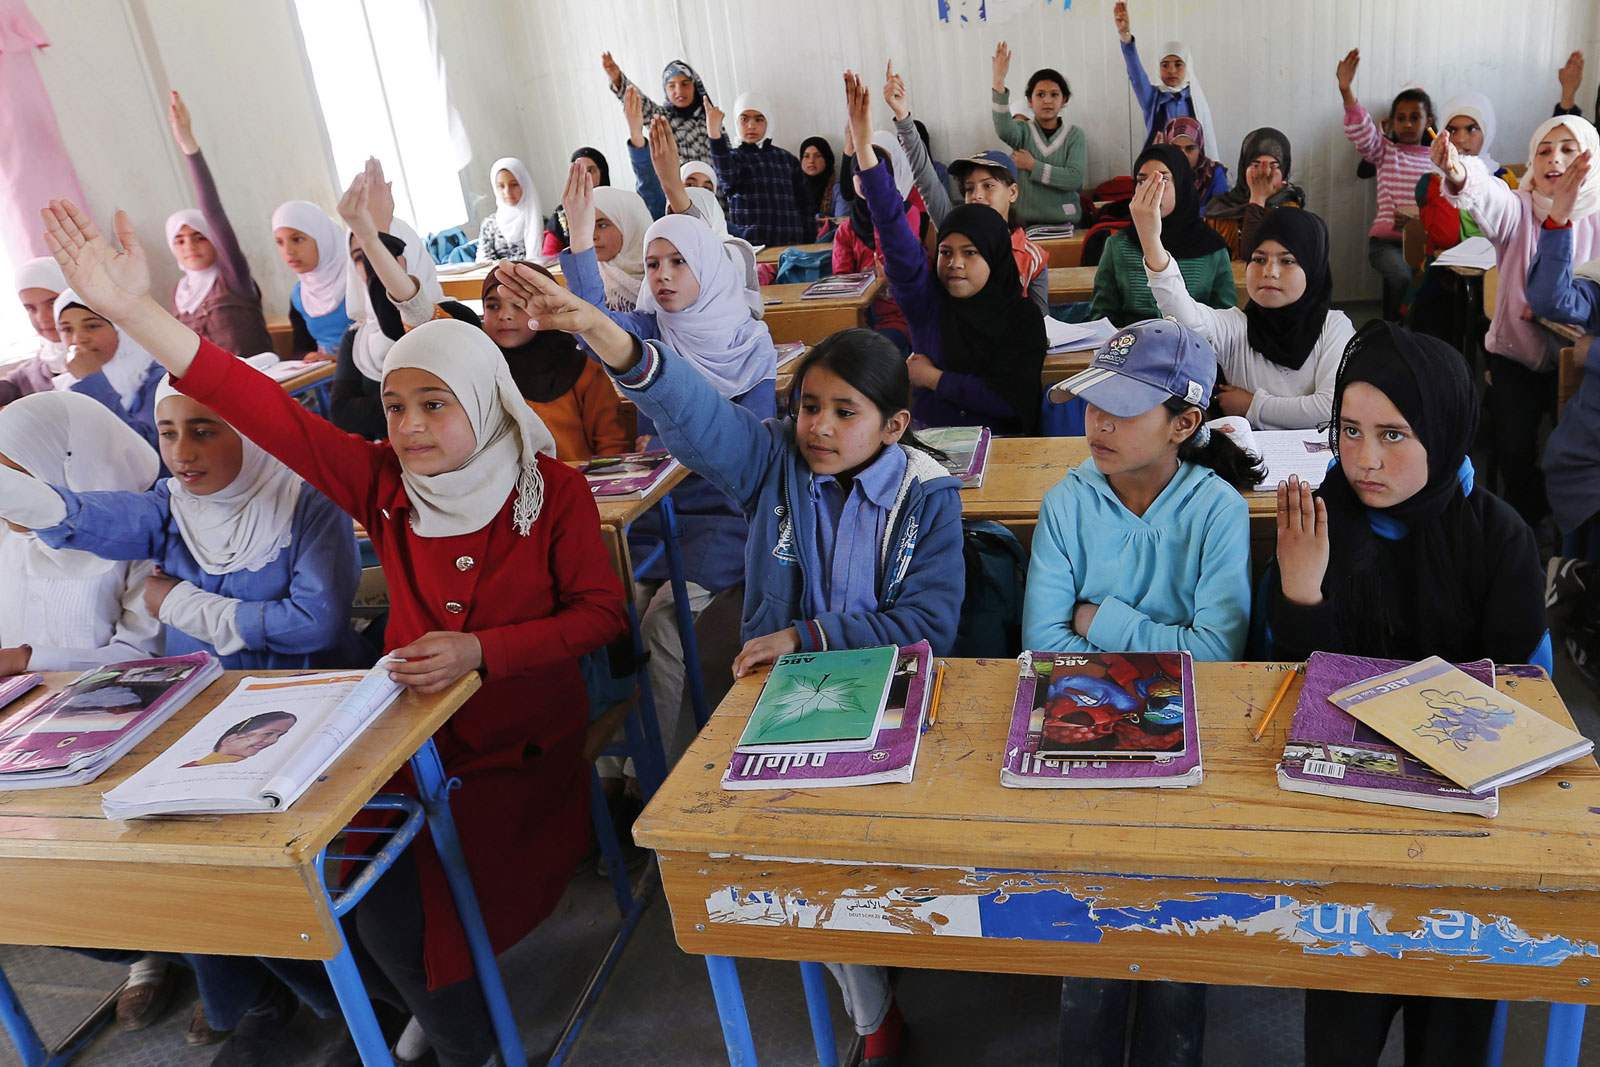 Syrian refugee students in a UNICEF school at the Al Zaatari refugee camp, near Jordan's border with Syria, March 11, 2015